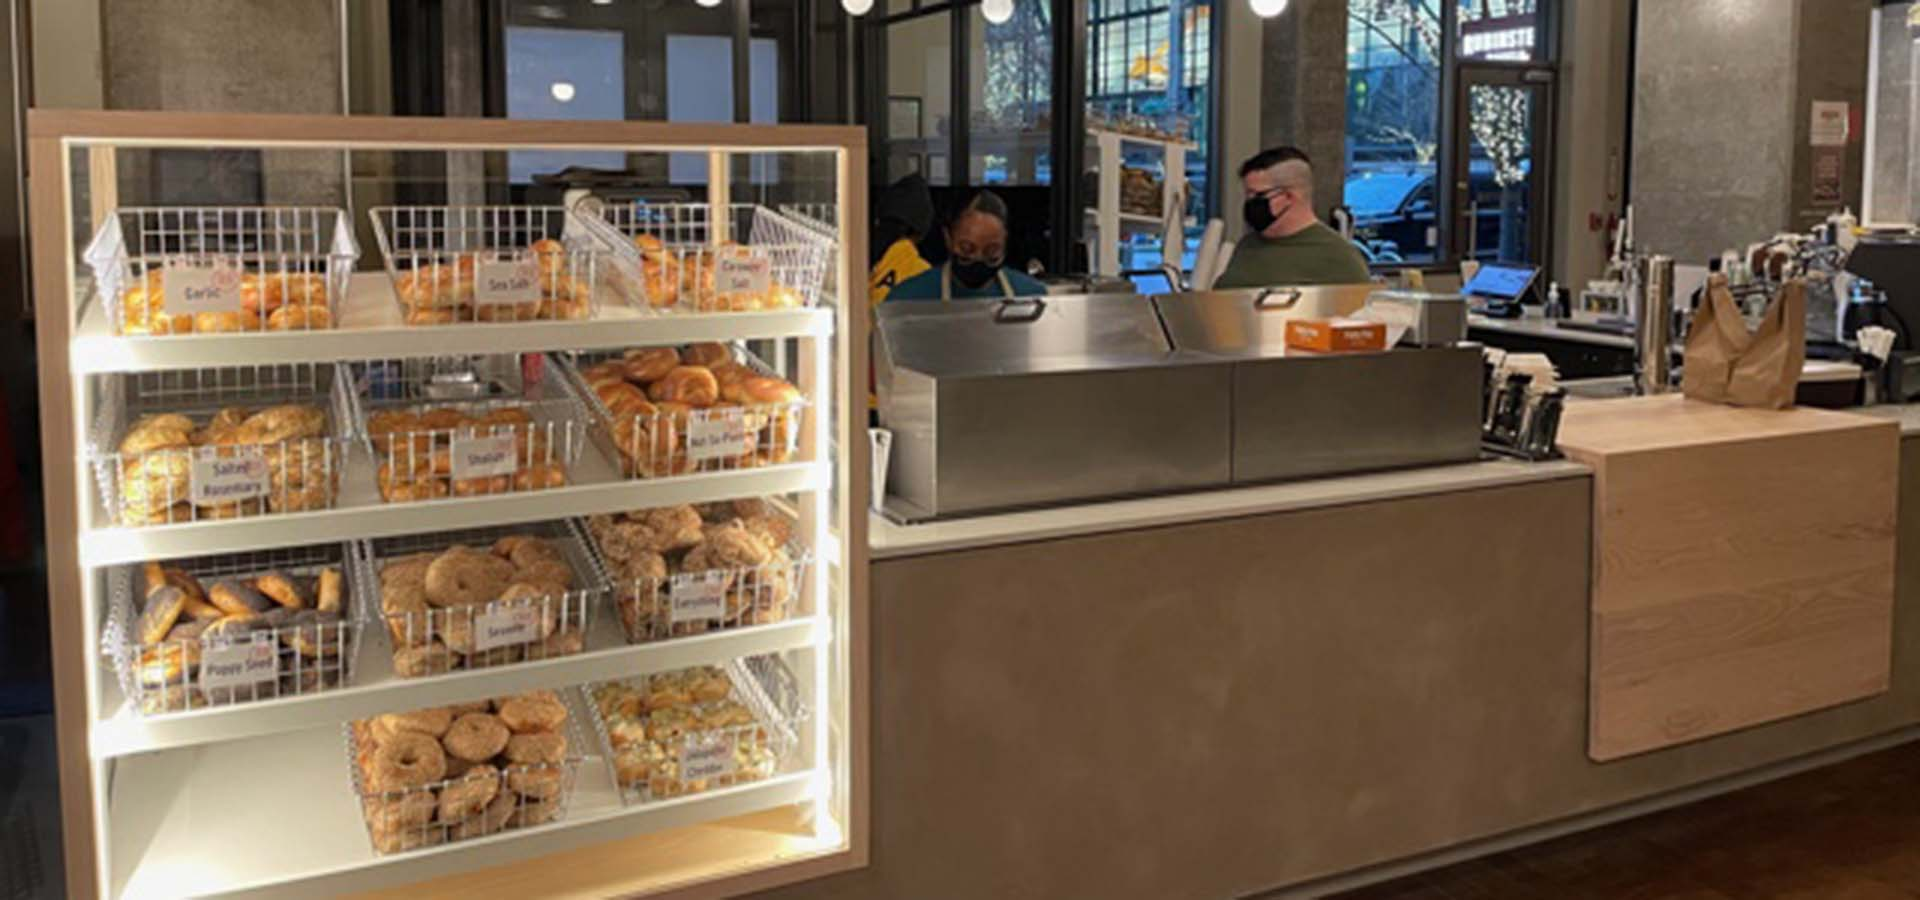 Store interior of a bagel counter with staff and baskets of bagels.